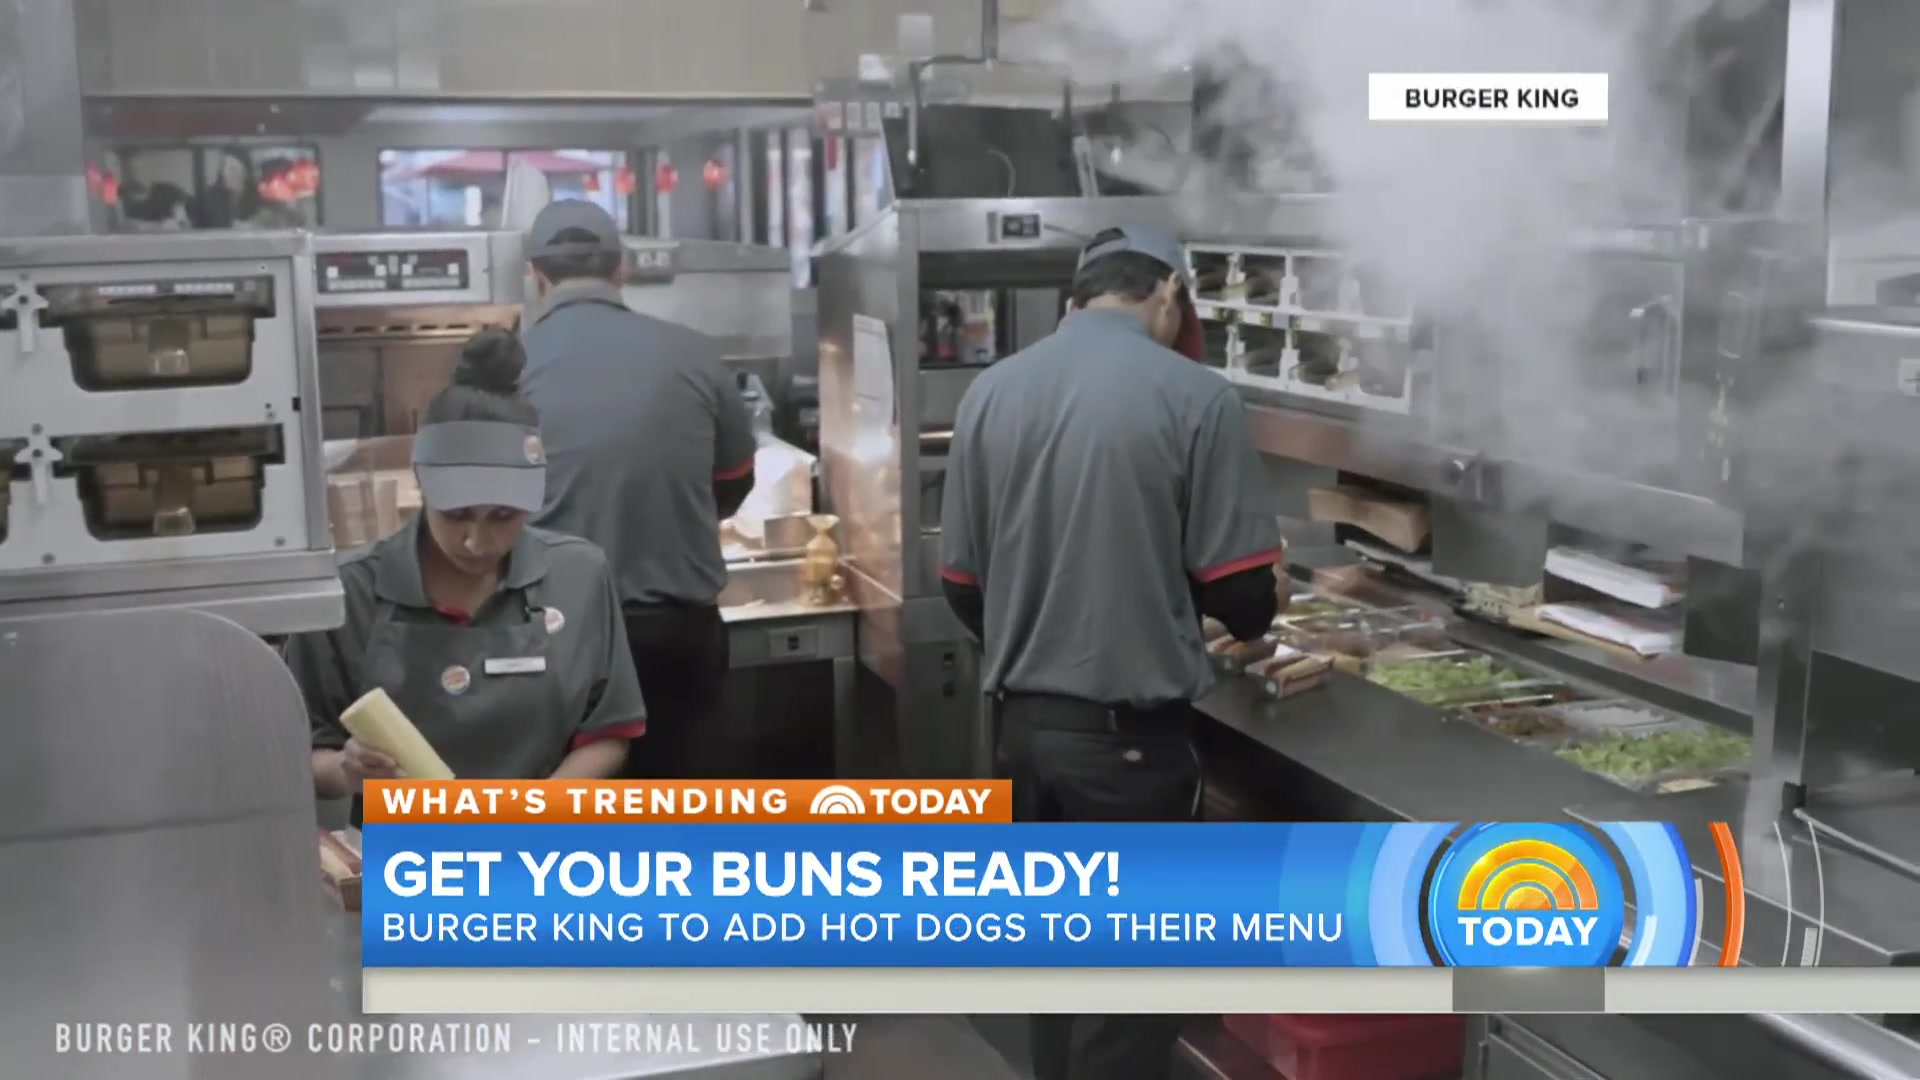 Burger King to Add Hot Dogs to the Menu